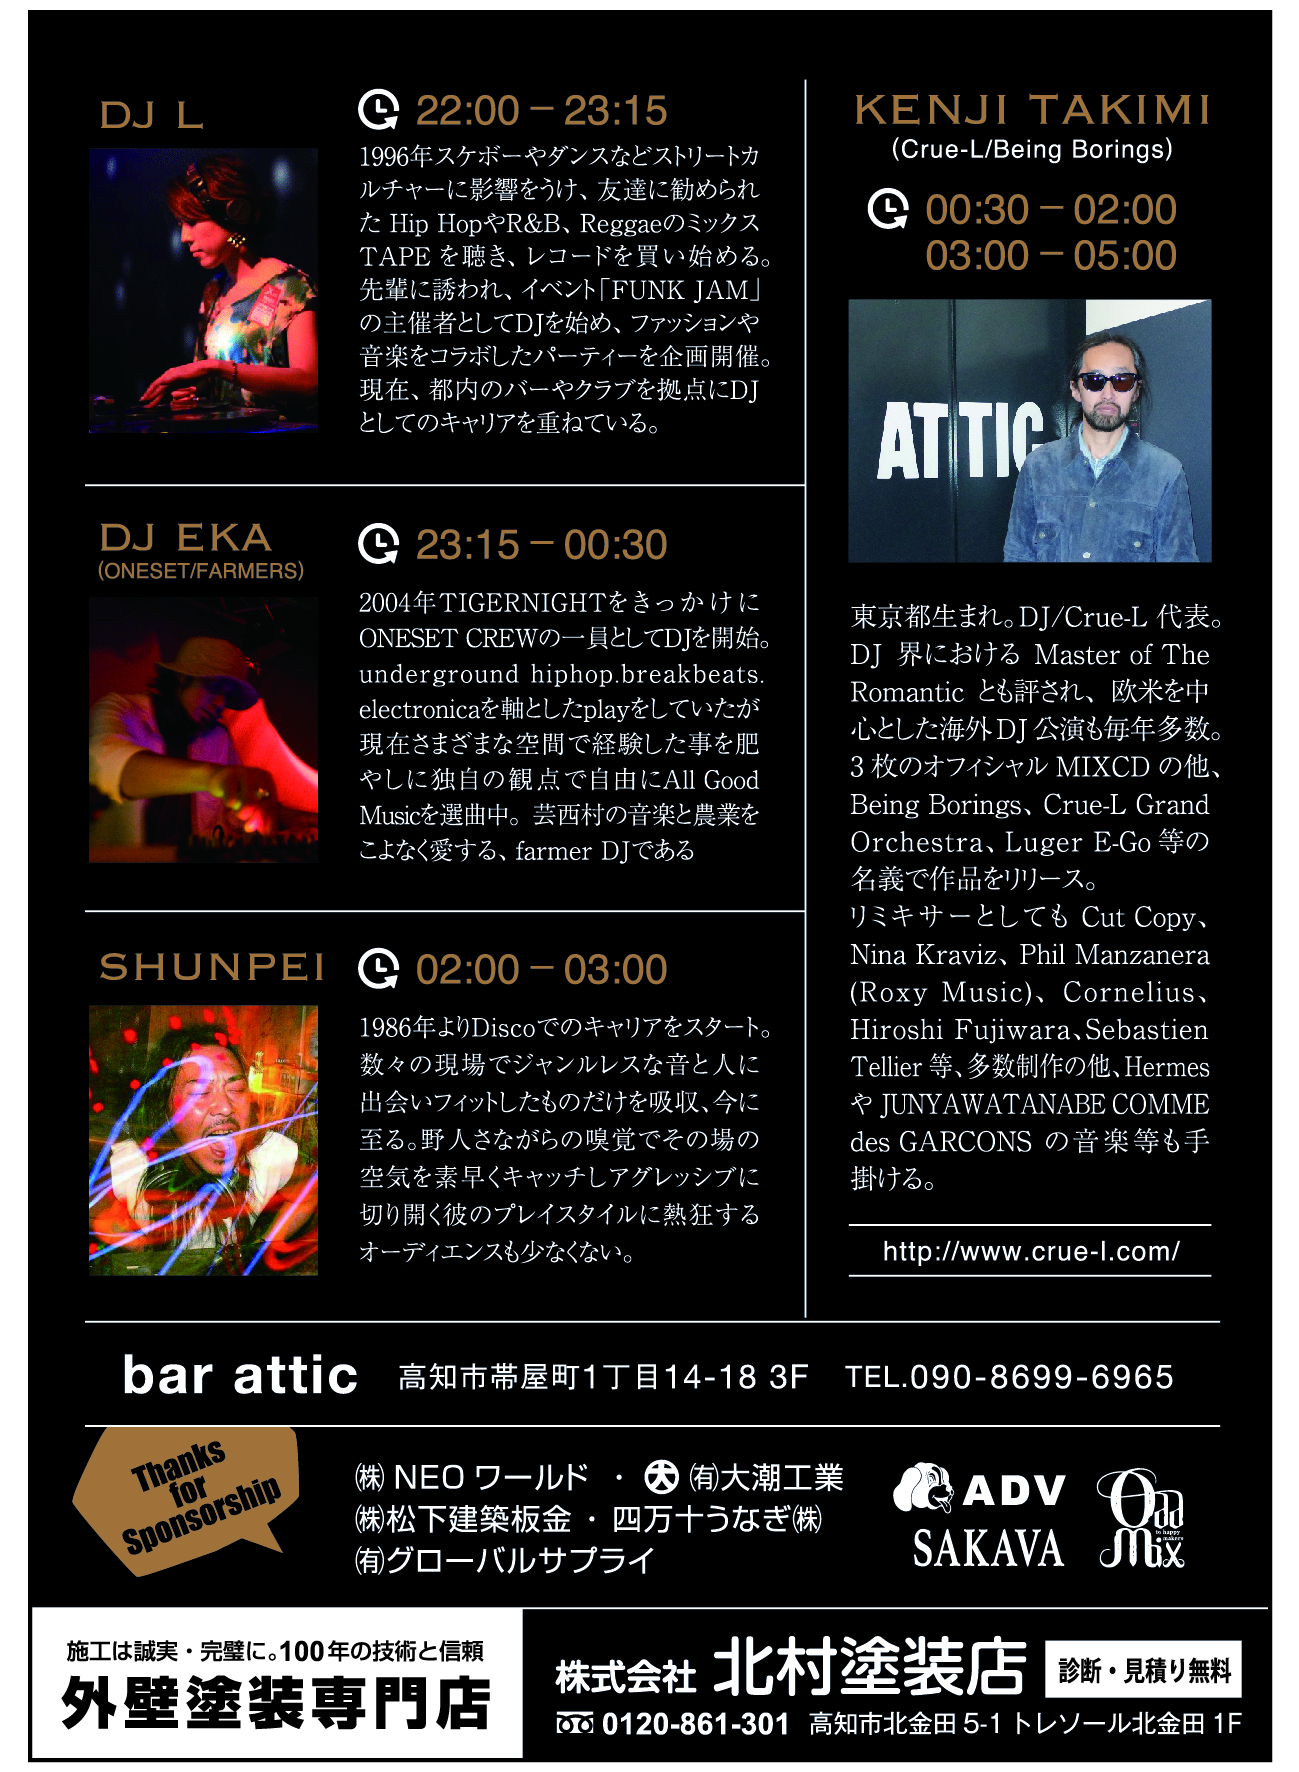 Night Cruise』 @ BAR ATTIC 2018.7.21(sat) open / start 22:00-5:00 GUEST DJ  : Kenji Takimi (Crue-L / Being Borings)<br> DJ :  L , Eka , Shunpei <br>info:Atomic Garage 090-8971-7176